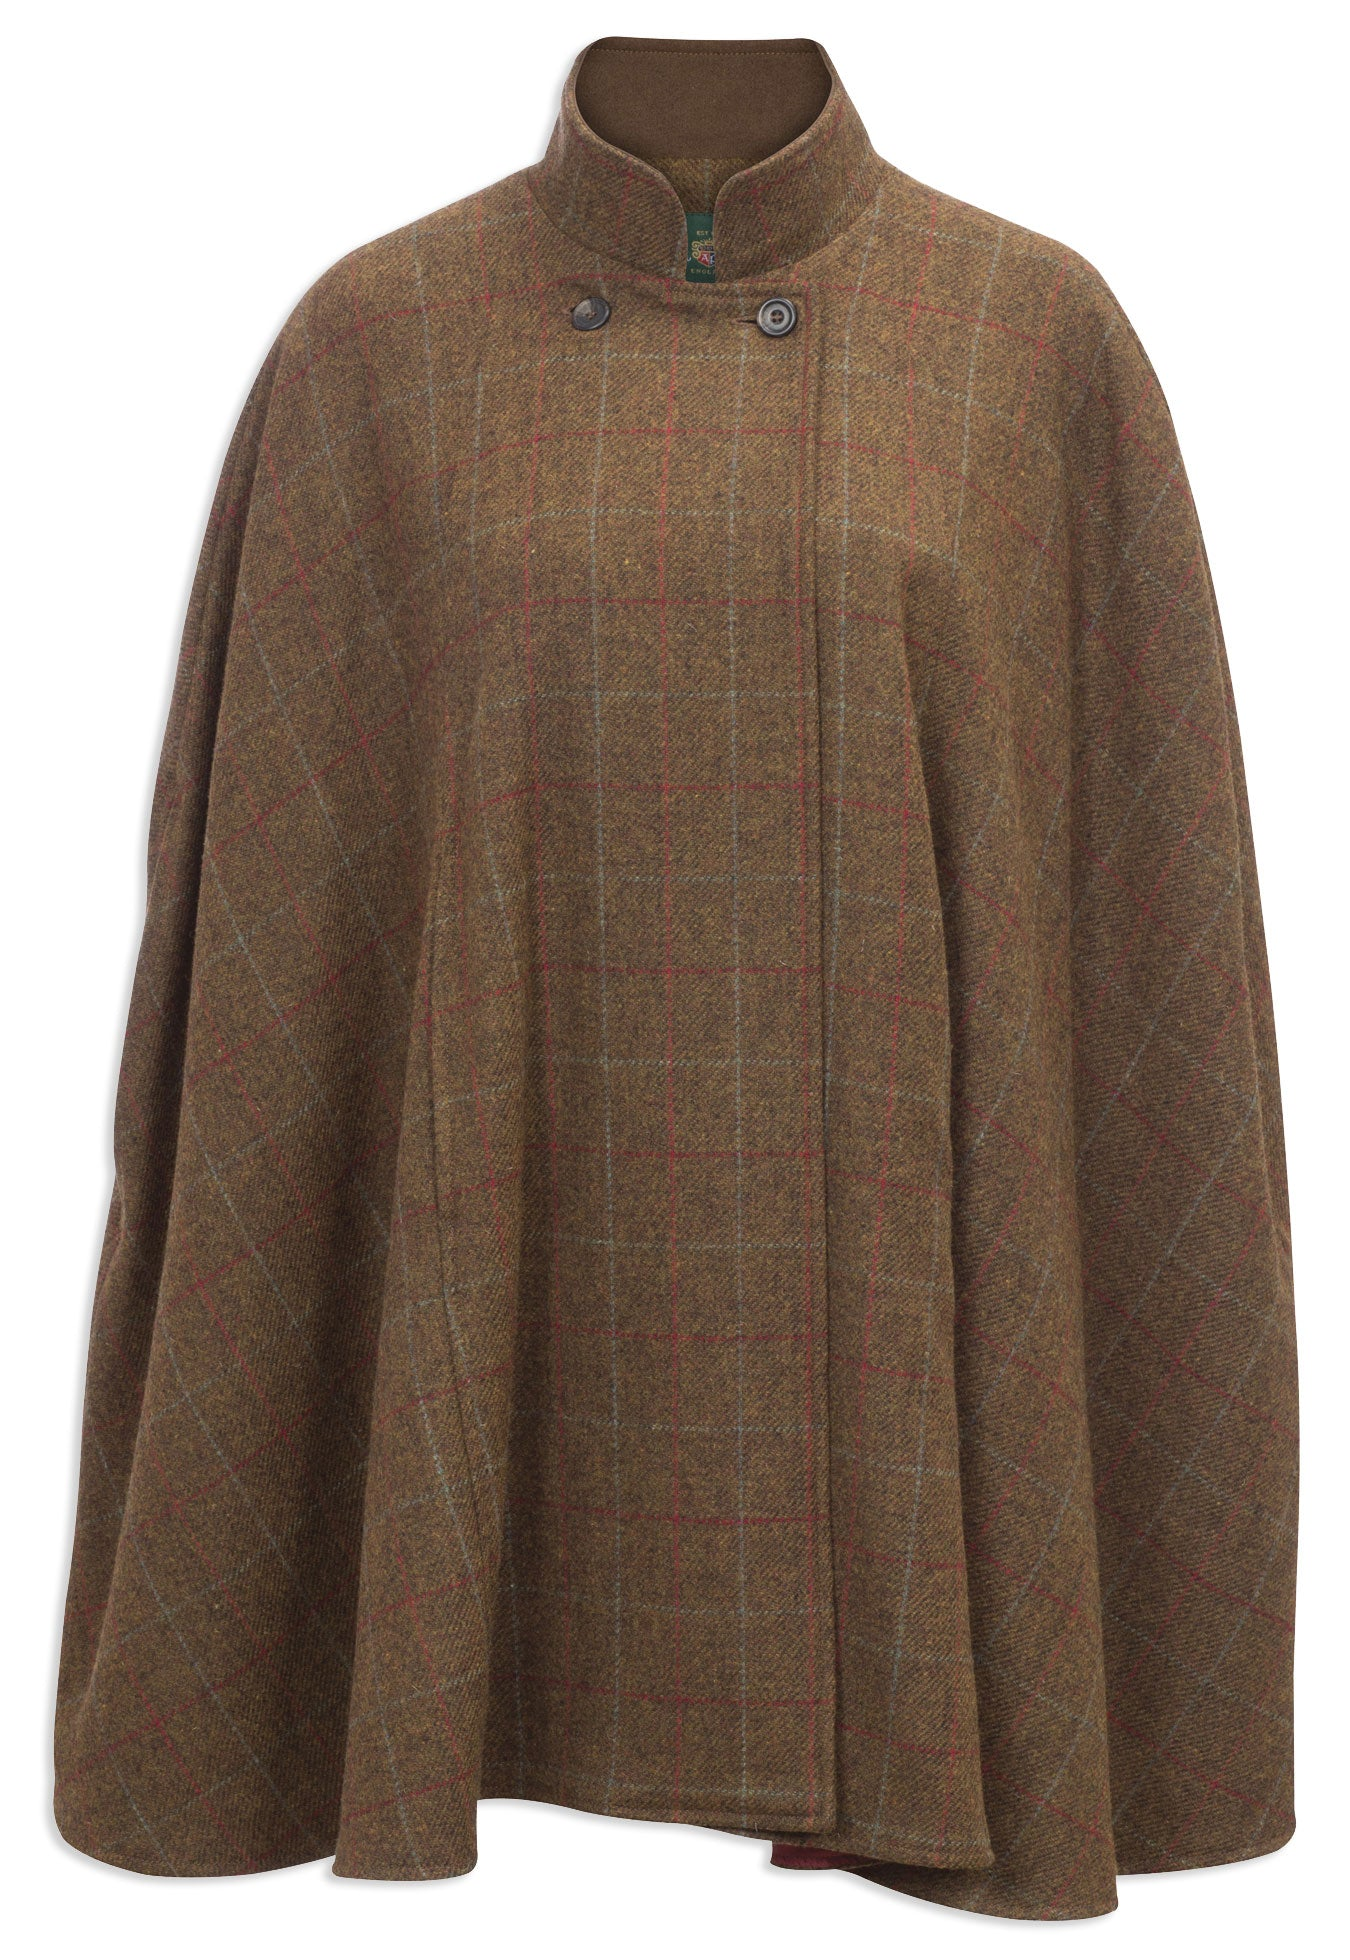 Alan Paine Surrey Tweed Cape | Orchard & Hazel